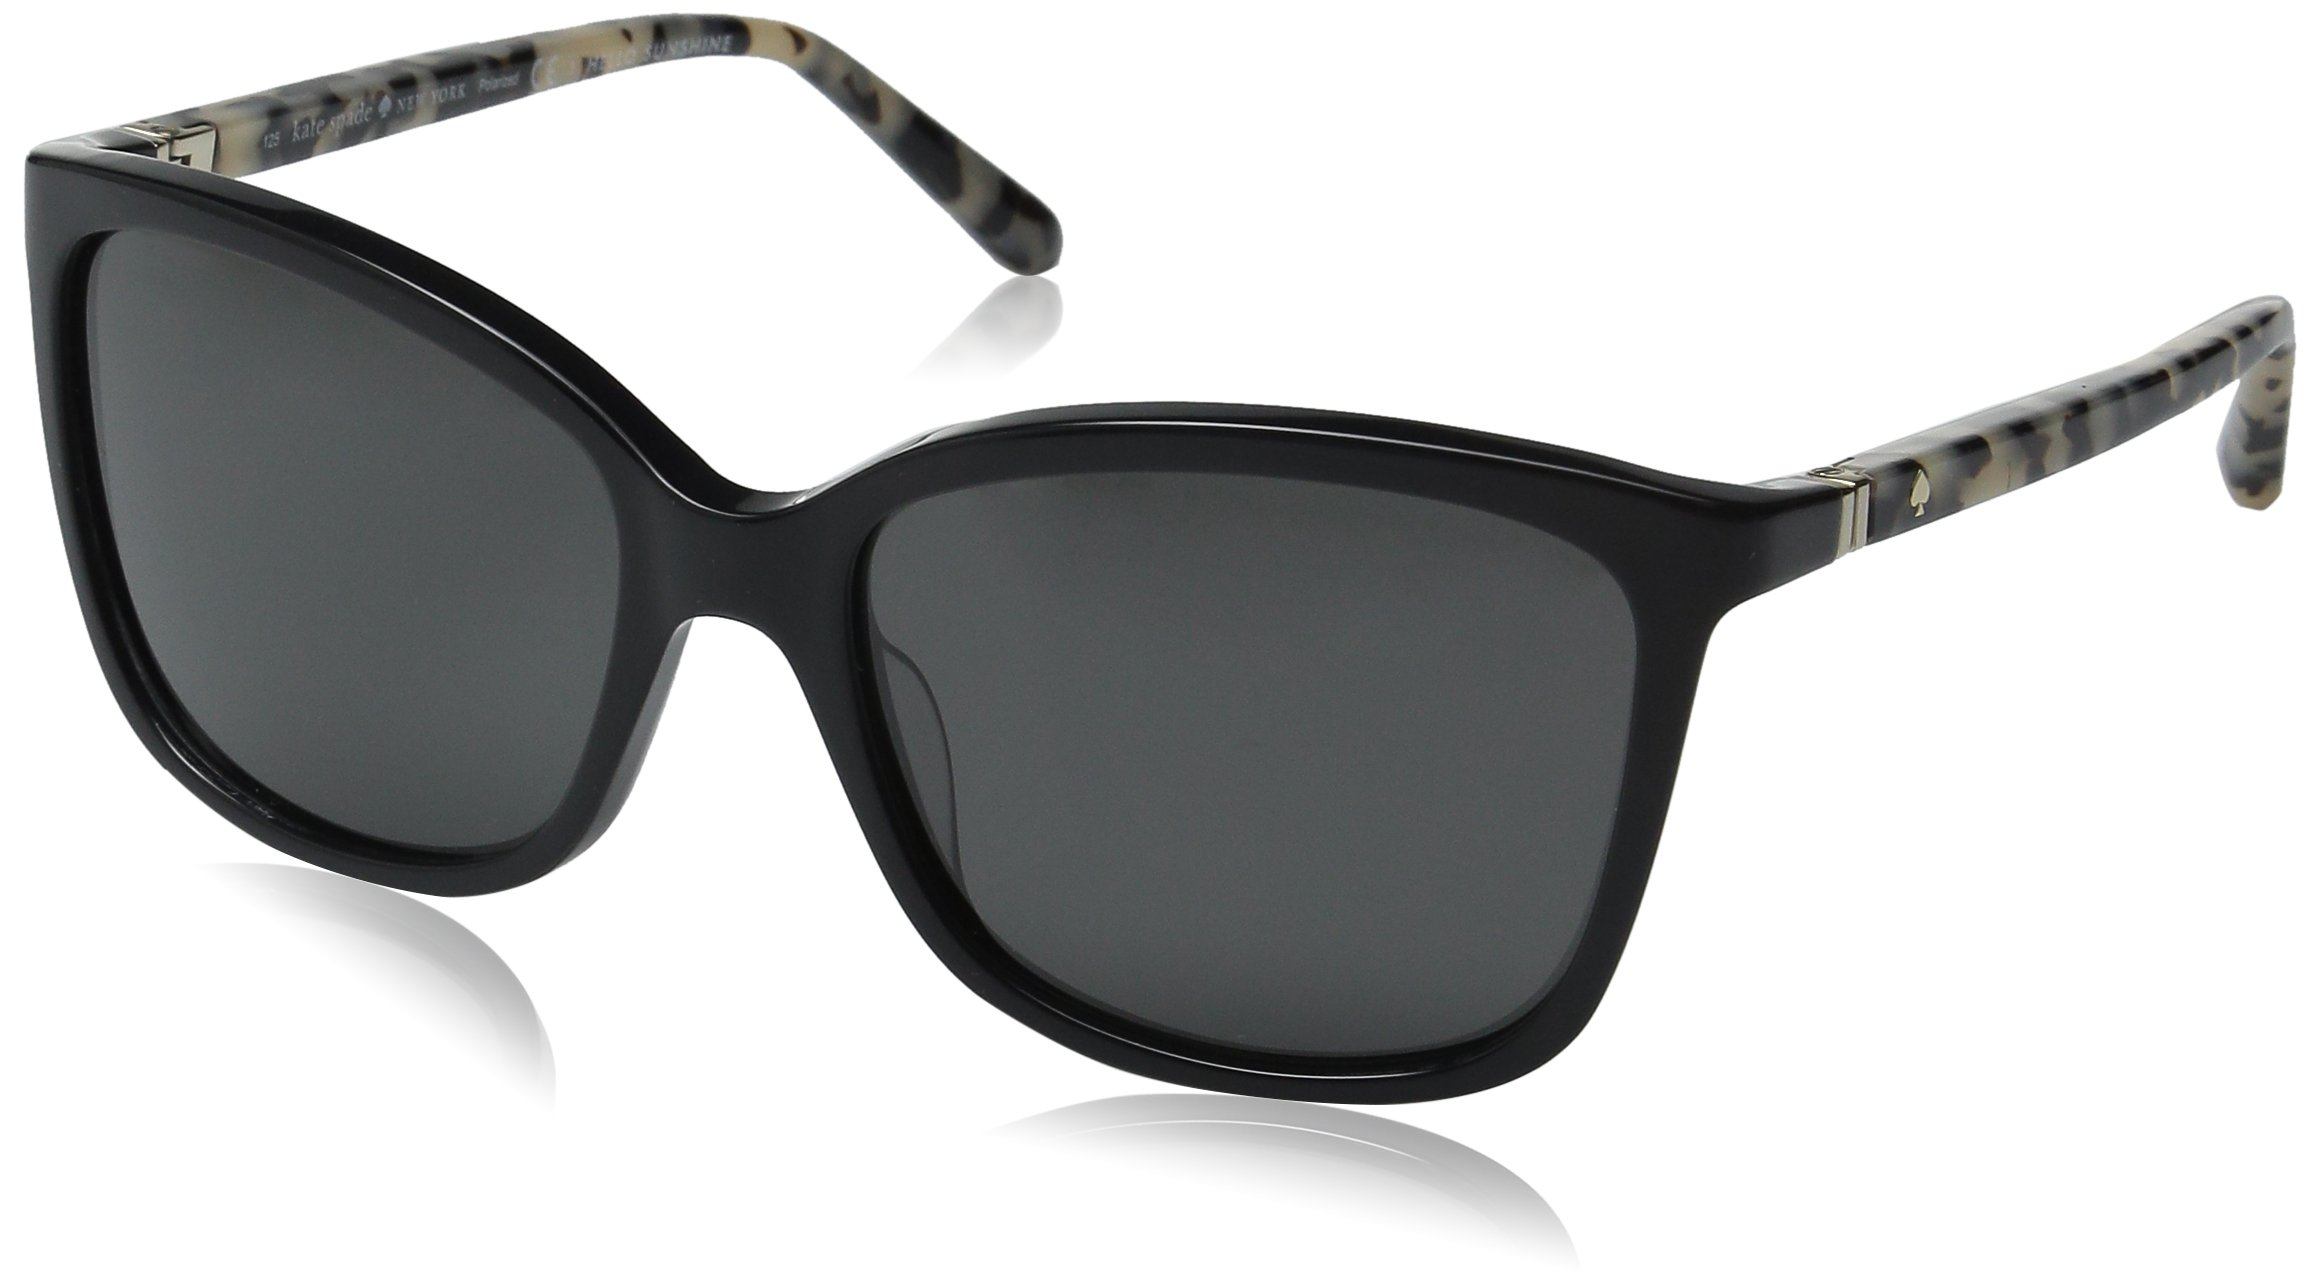 Kate Spade Women's Kasie/P/S Polarized Square Sunglasses, Black Havana/Gray, 55 mm